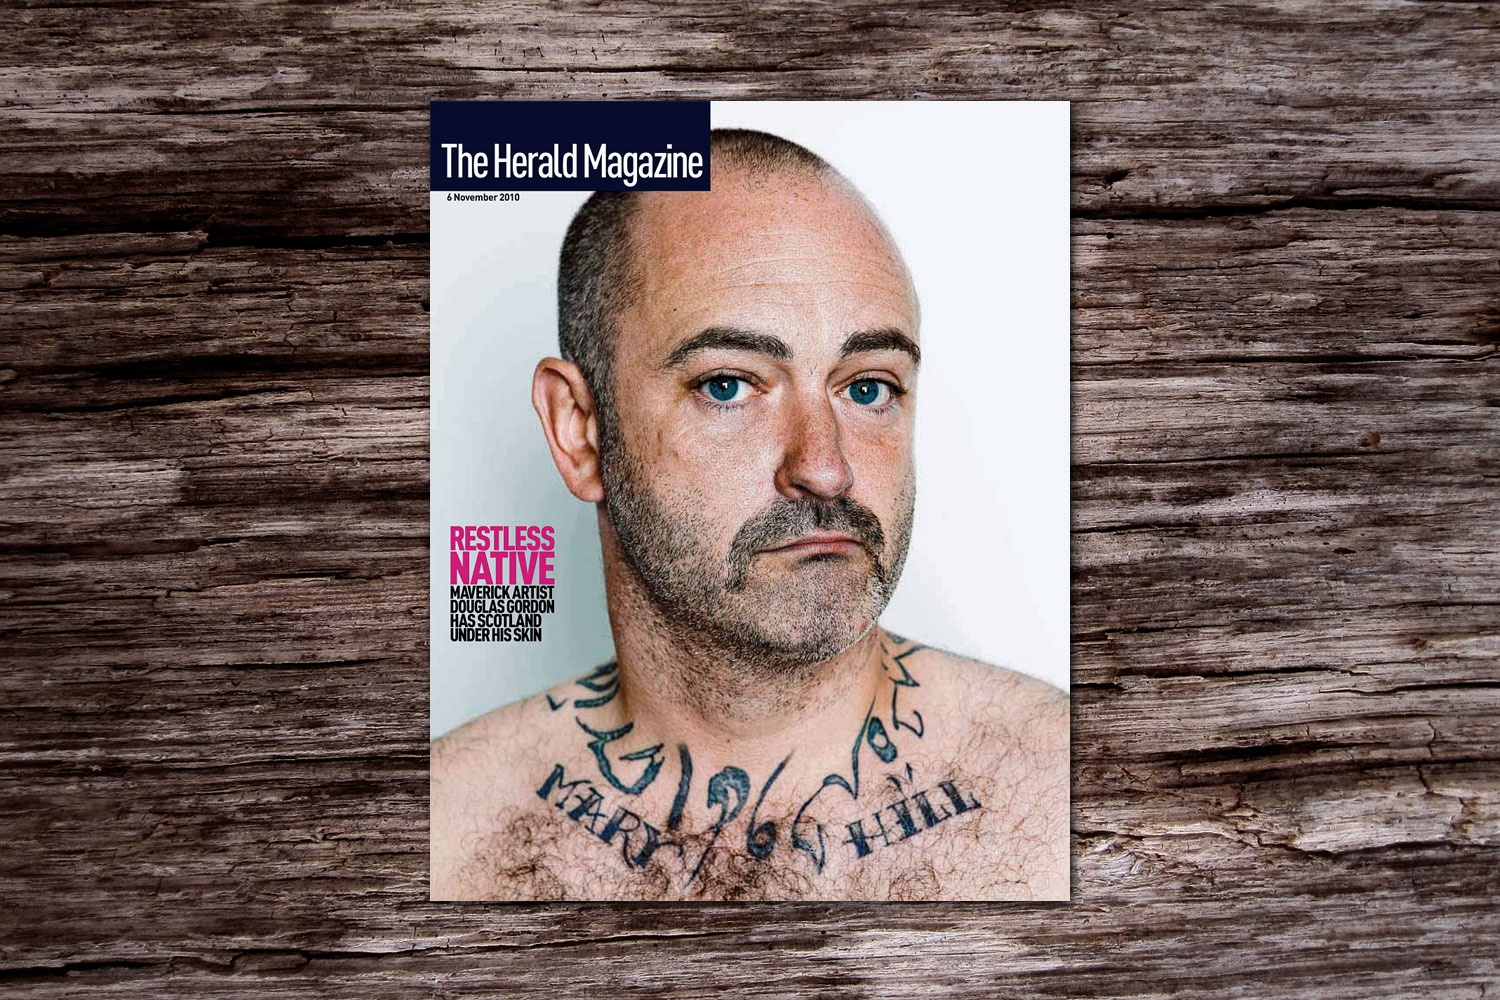 PATRICK STRATTNER PHOTOGRAPHY | TEAR SHEETS | Douglas Gordon / The Herald Magazine